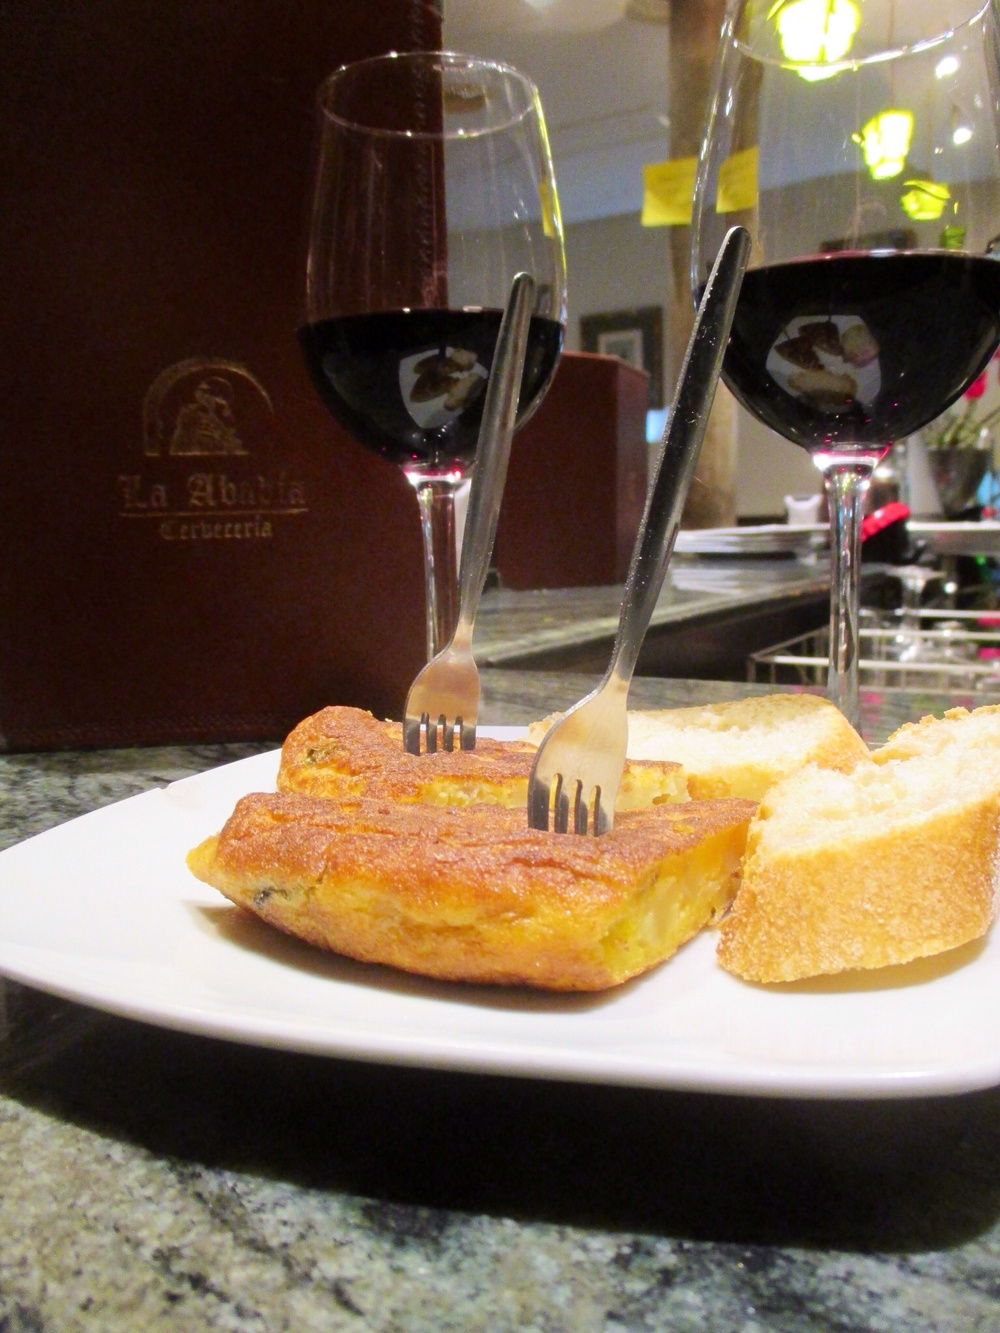 Our first free tapa in Granada - the signature Spanish-style tortilla de patatas at La Abadia